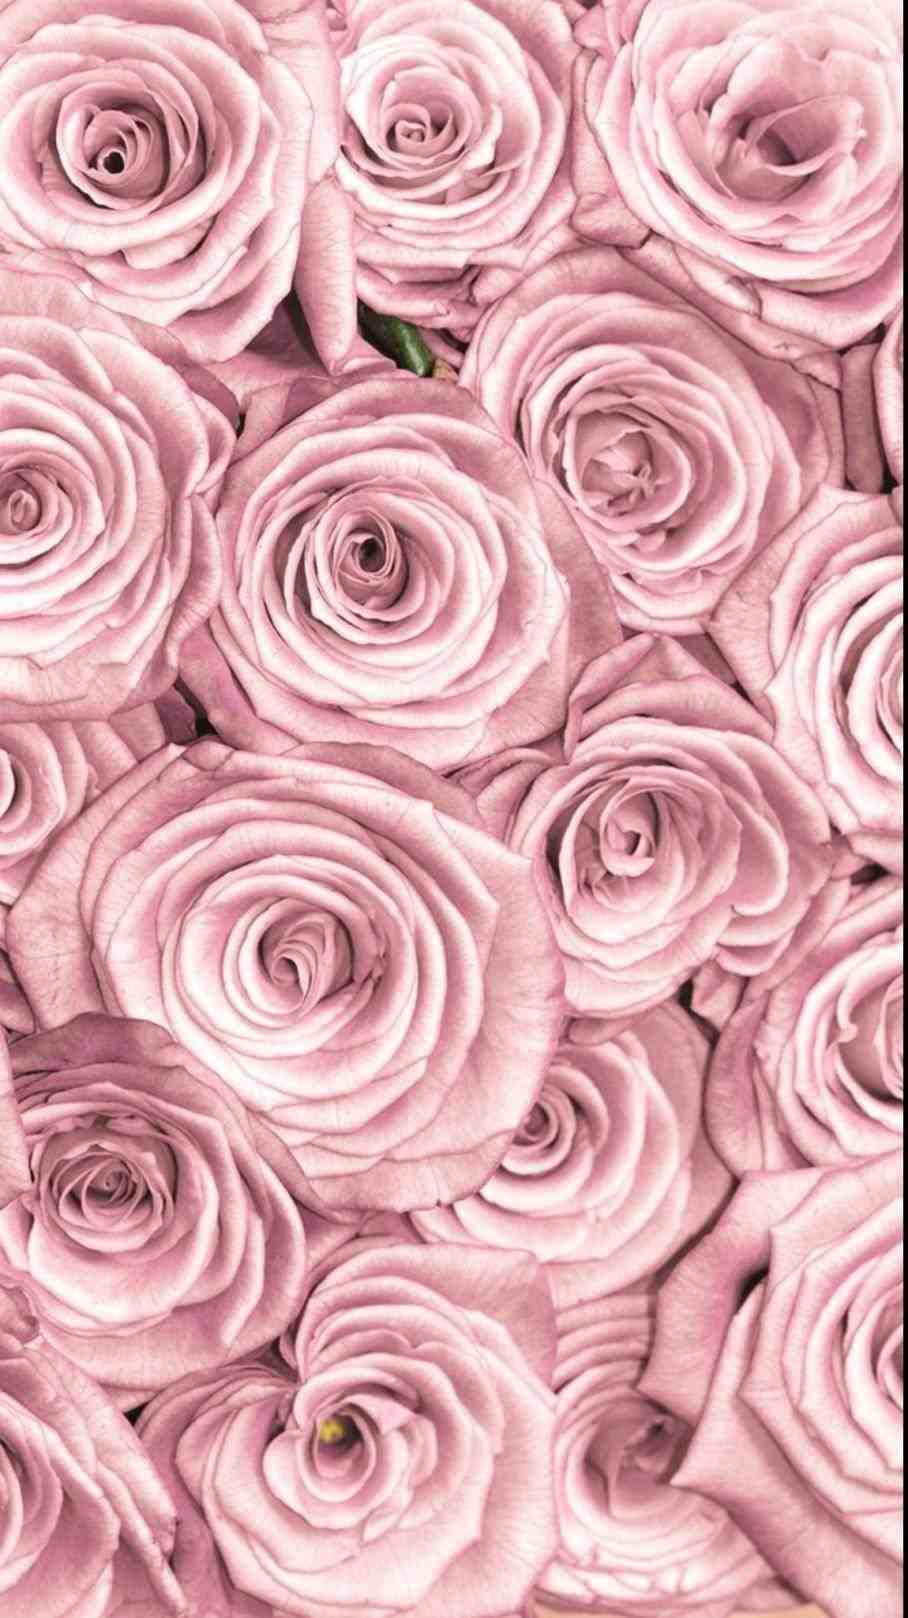 Aesthetic Rose Computer Wallpapers Top Free Aesthetic Rose